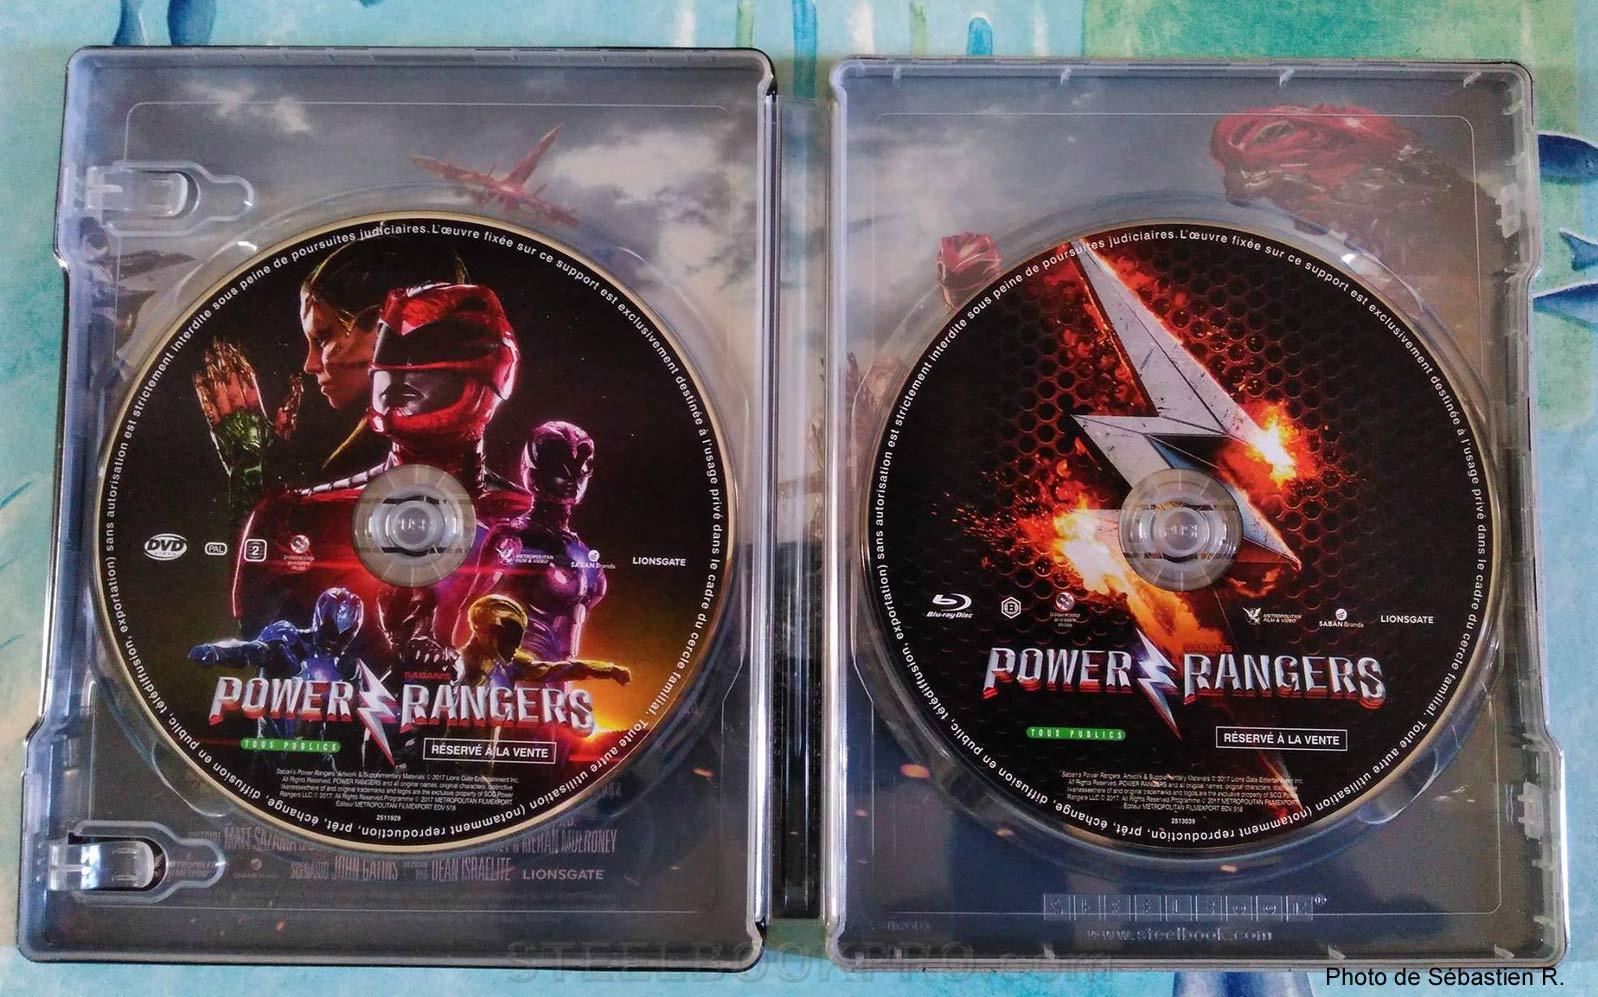 Power-Rangers-steelbook-6